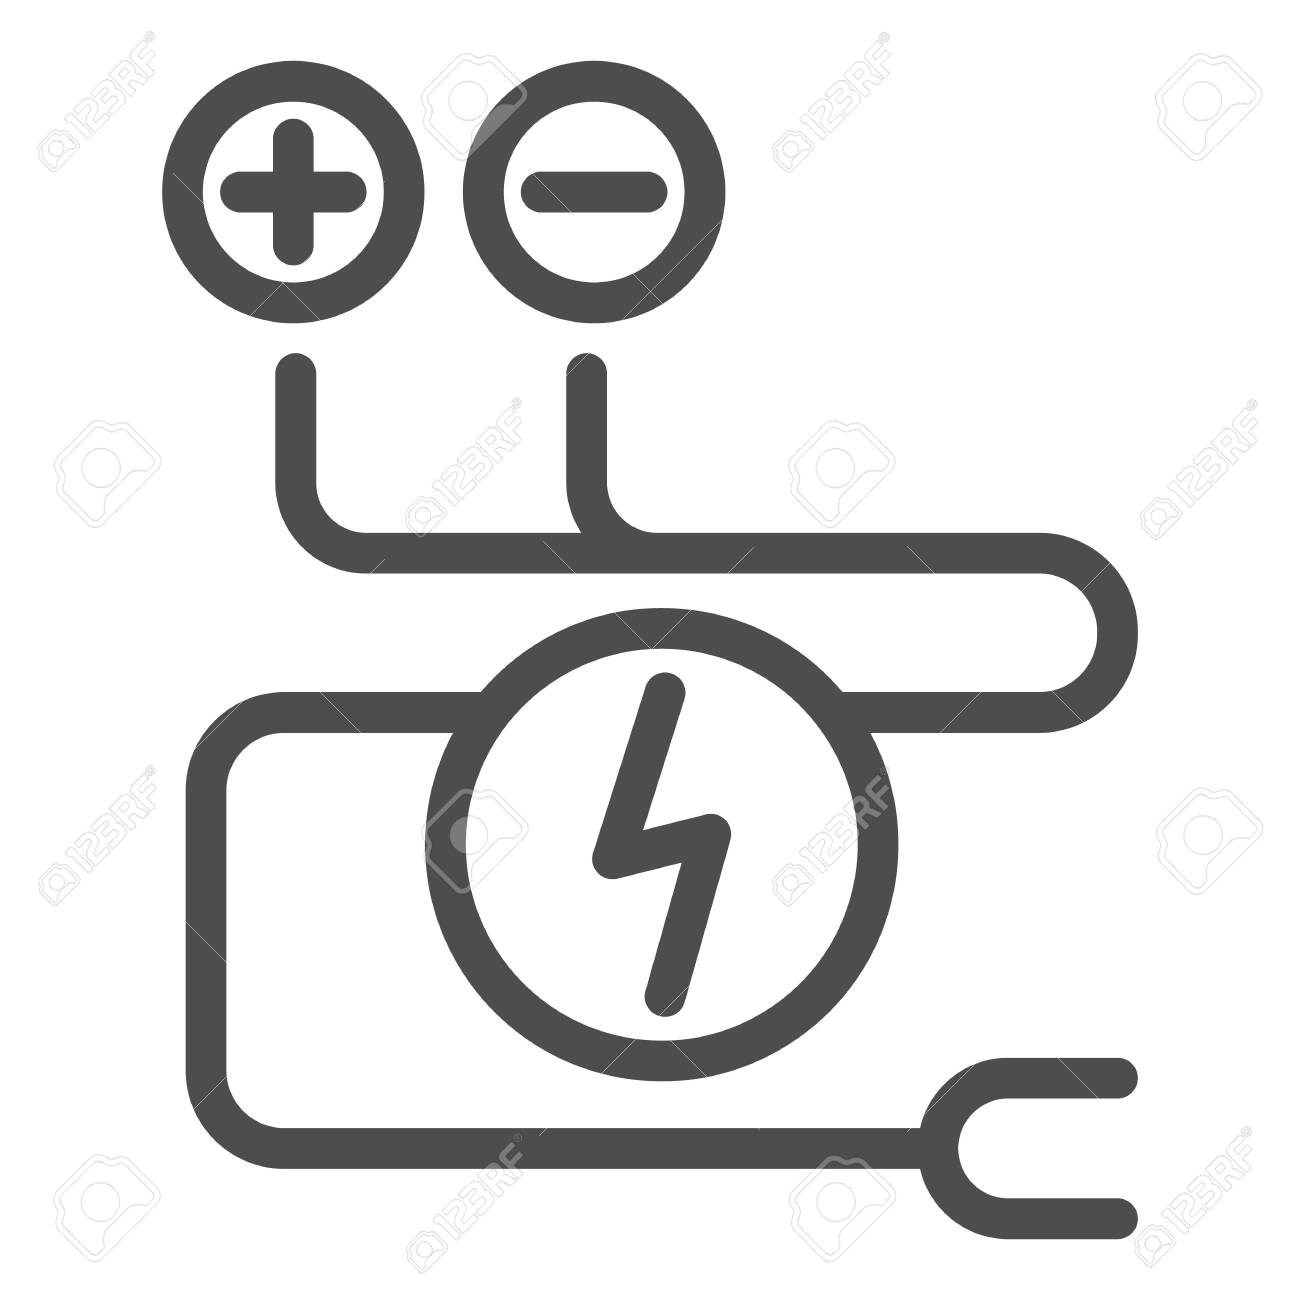 Electrical Wiring Line Icon Cable Vector Illustration Isolated Royalty Free Cliparts Vectors And Stock Illustration Image 123903705